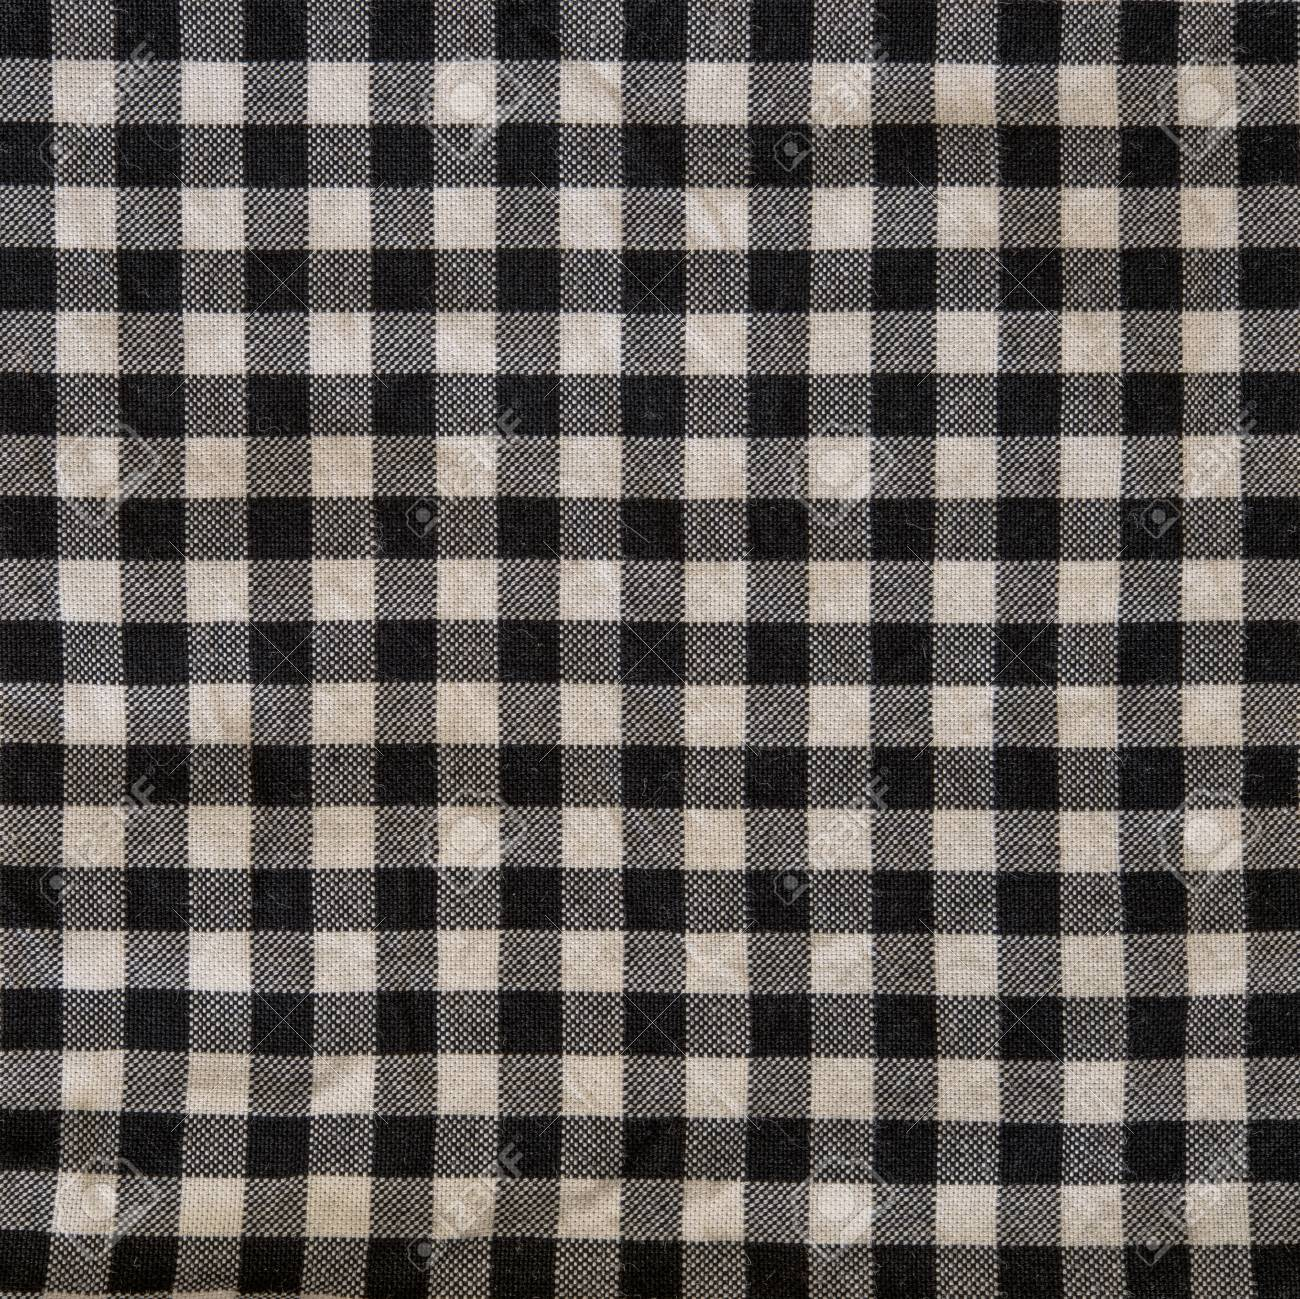 Gentil Close Up On Checkered Tablecloth Fabric. Black With White Tartan Square  Pattern As Background.